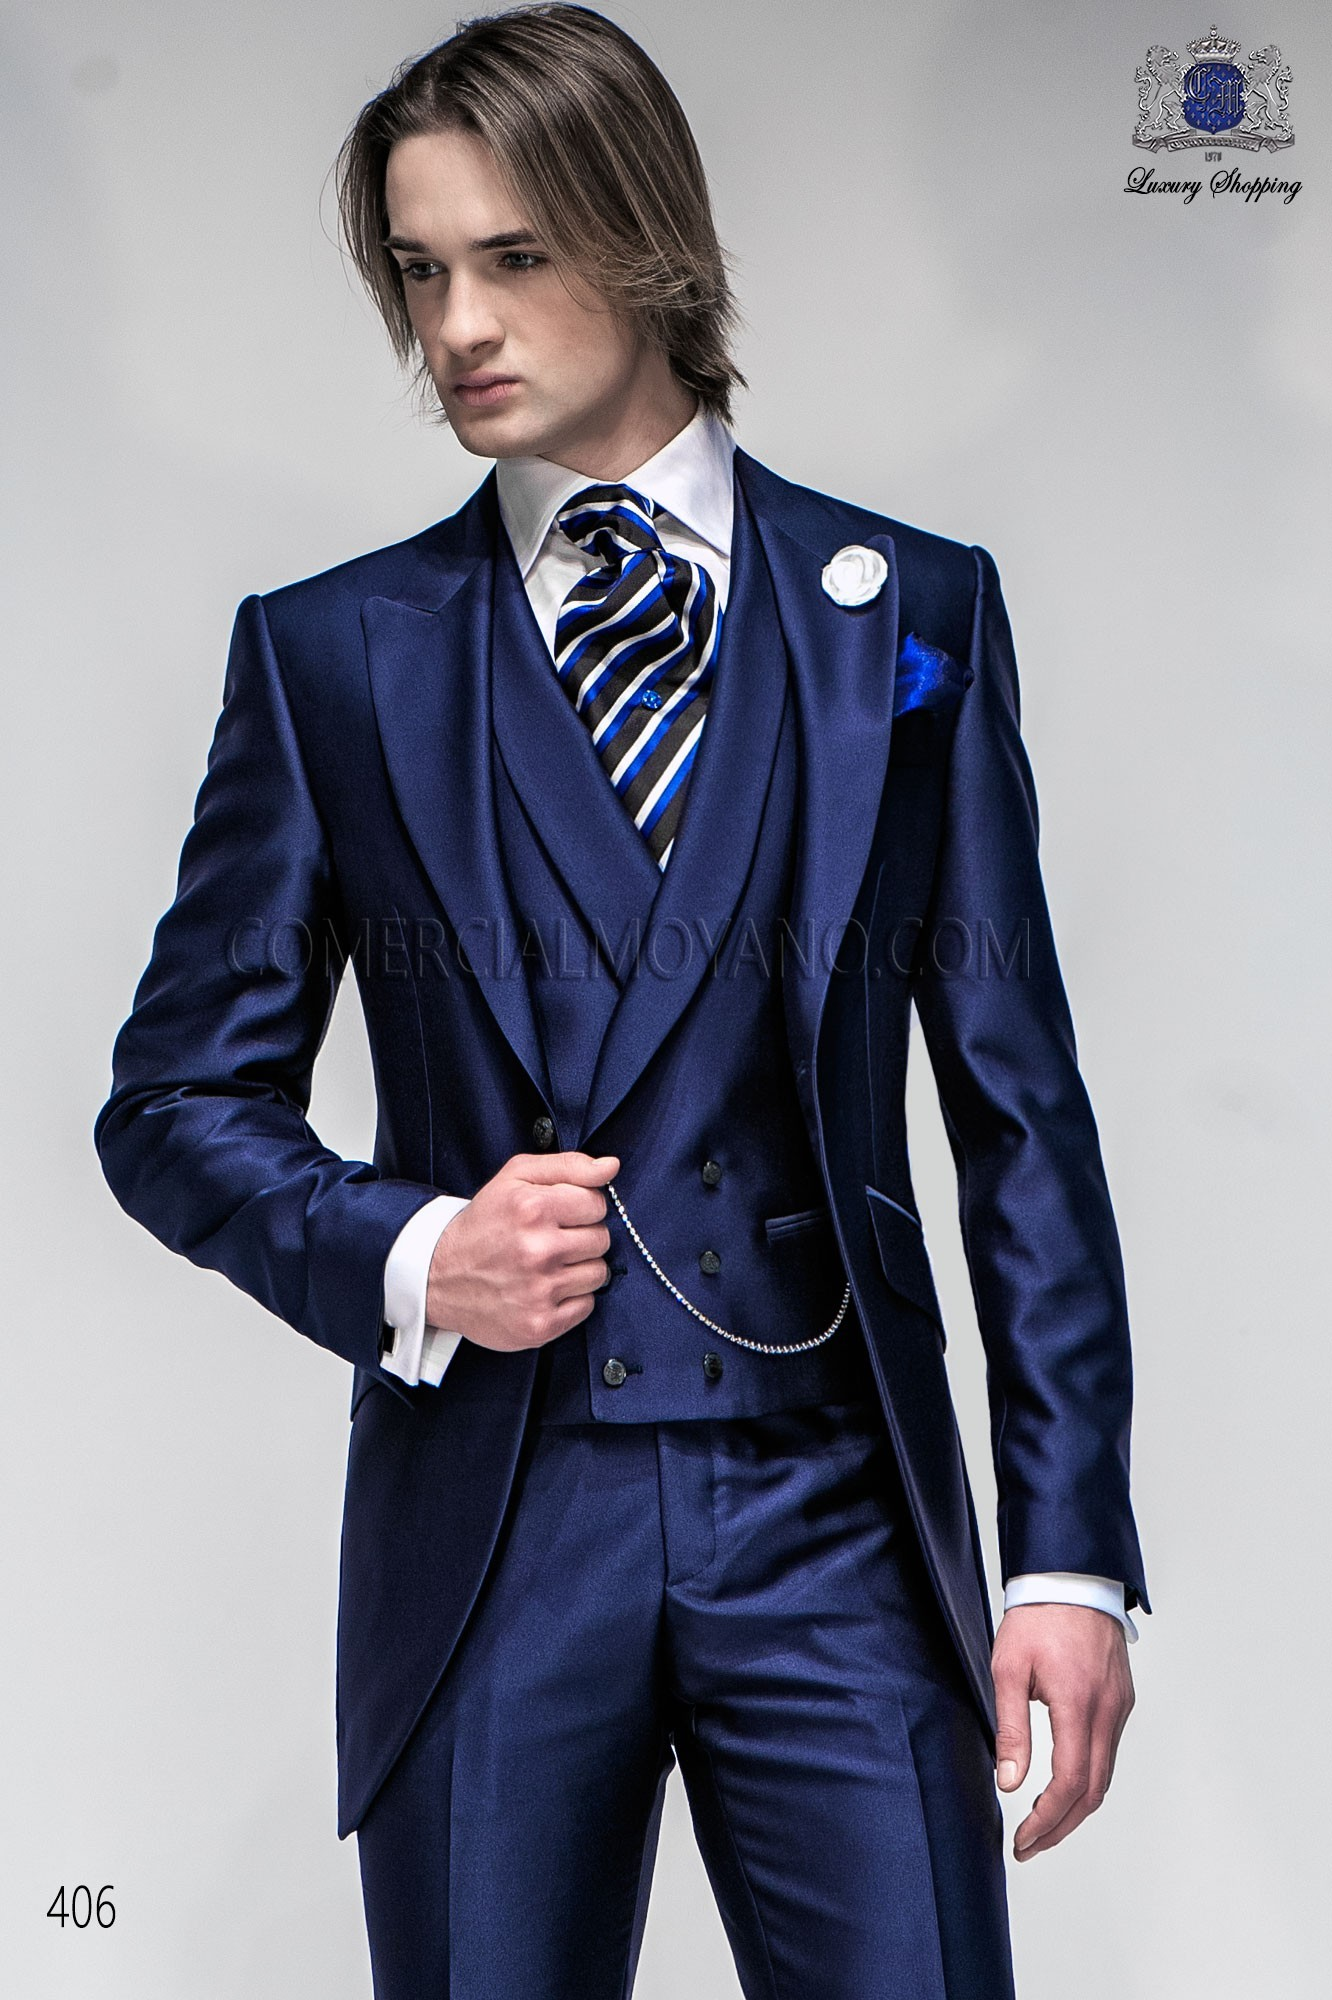 Men wedding suit metallic blue short frock coat in New Performance fabric with peak lapel and one button closure, style 406 Ottavio Nuccio Gala Fashion collection.